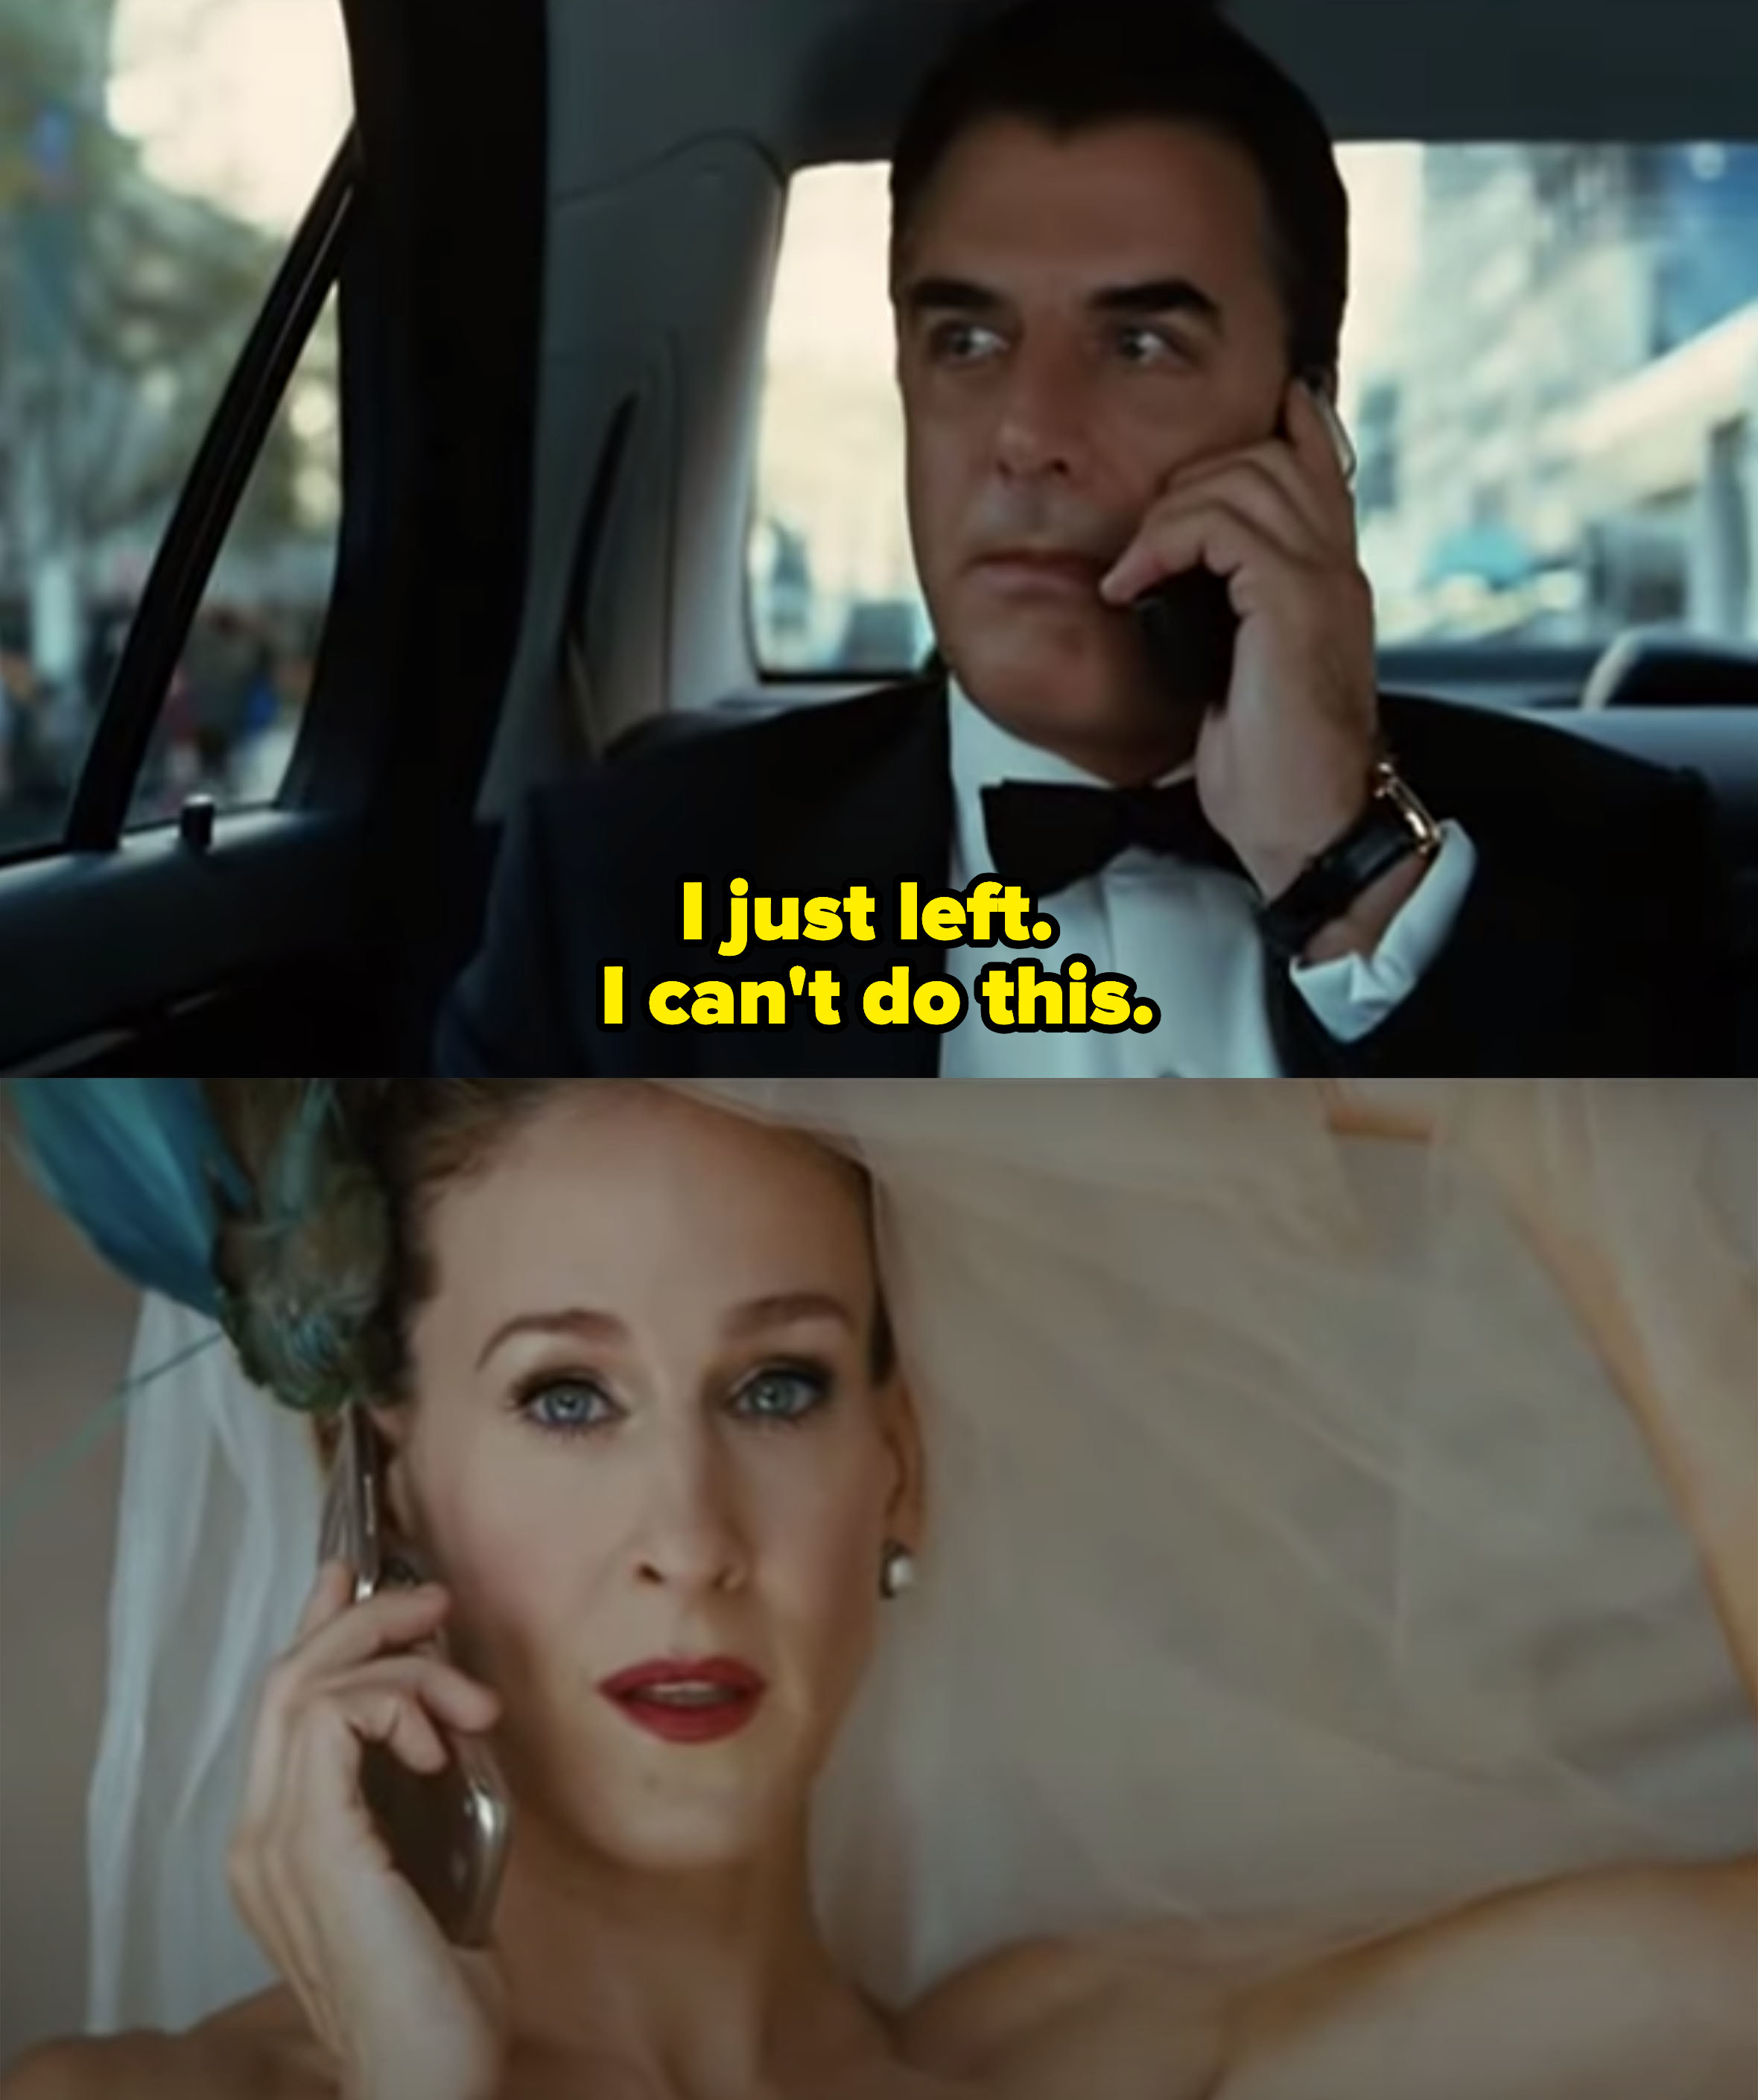 Big on the phone after the wedding to Carrie is called off